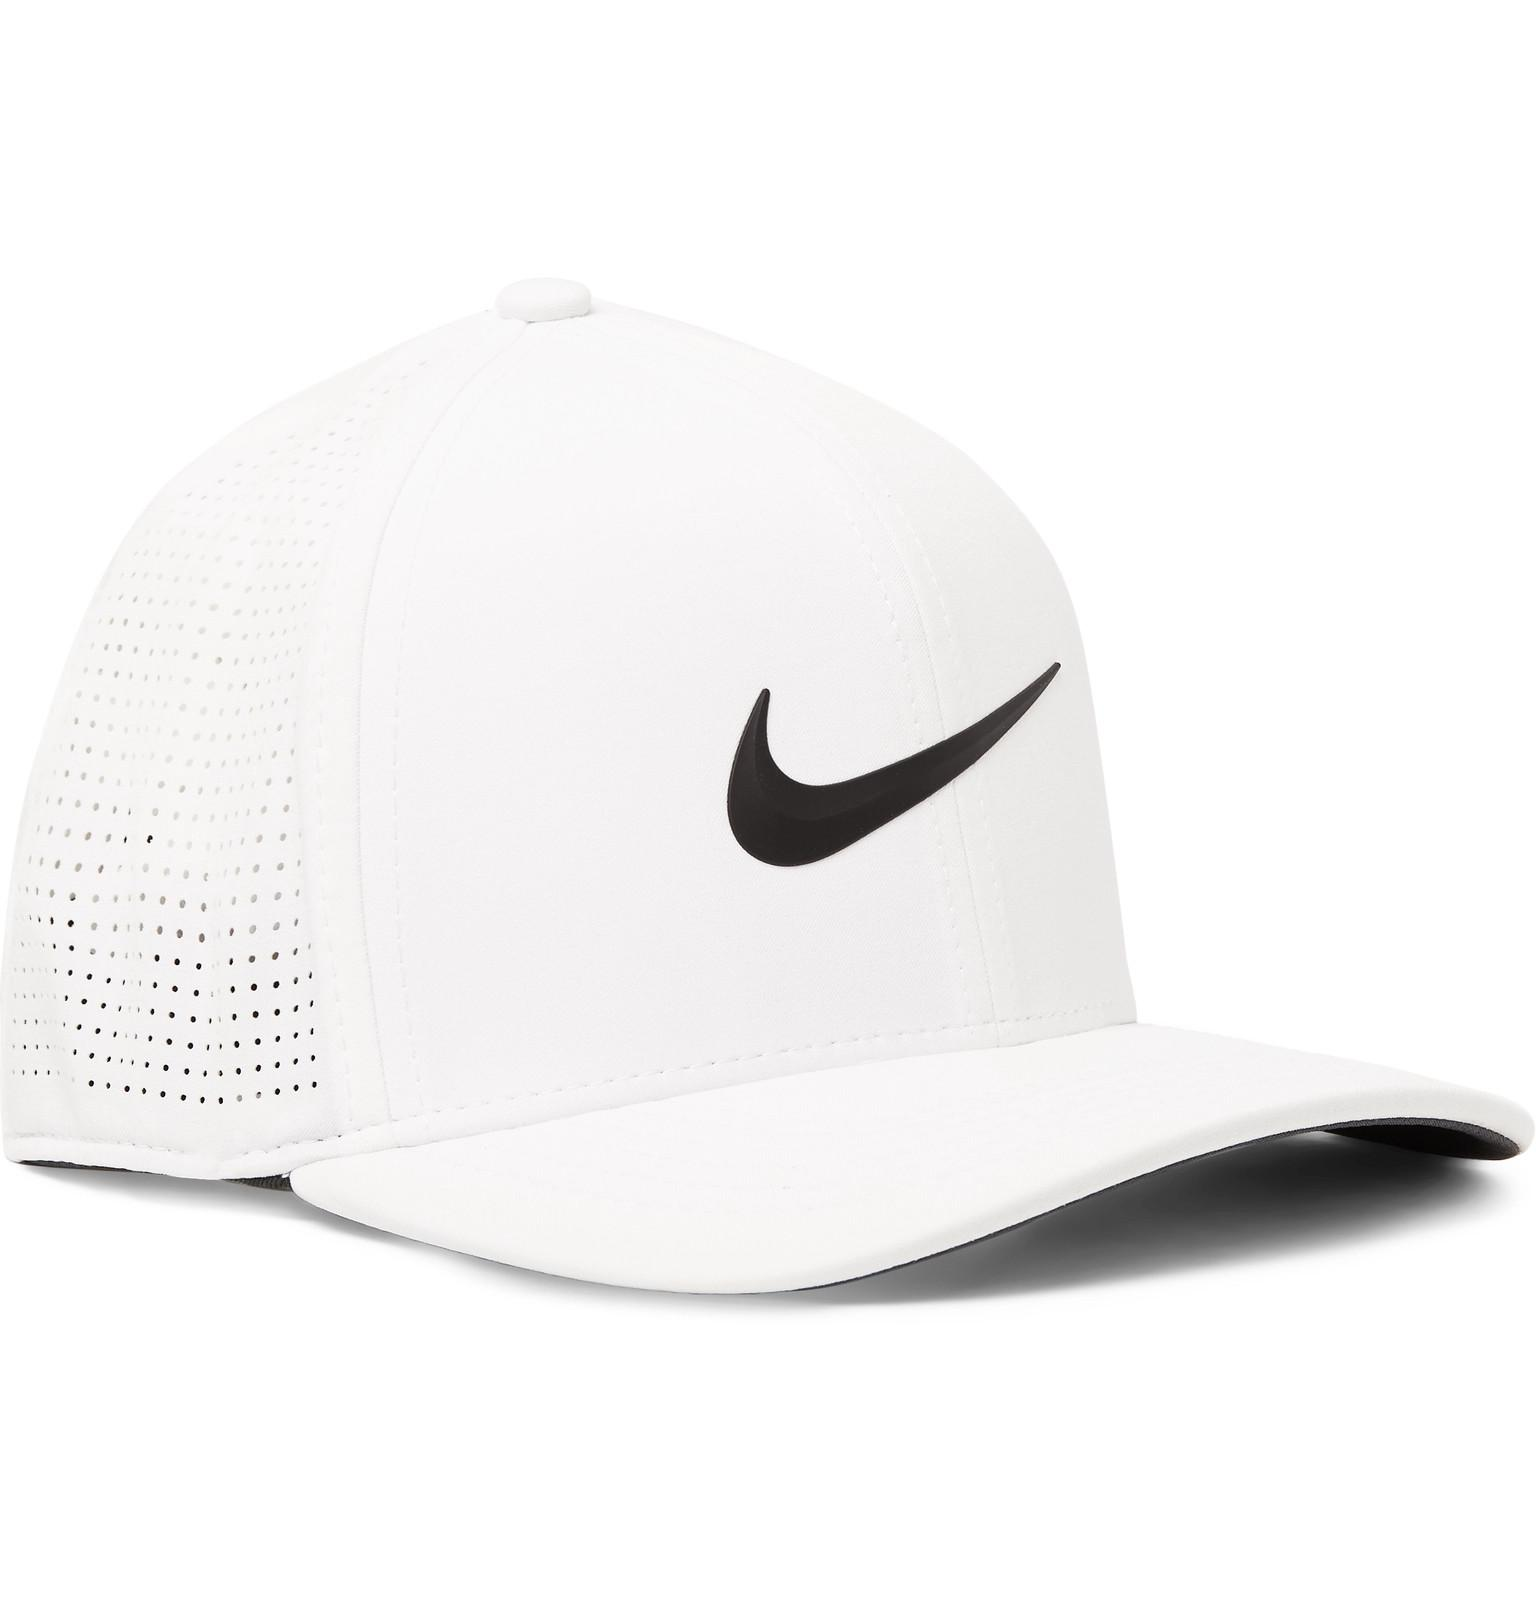 Nike Aerobill Classic 99 Perforated Dri-fit Golf Cap in White for ... f2c9bd318188